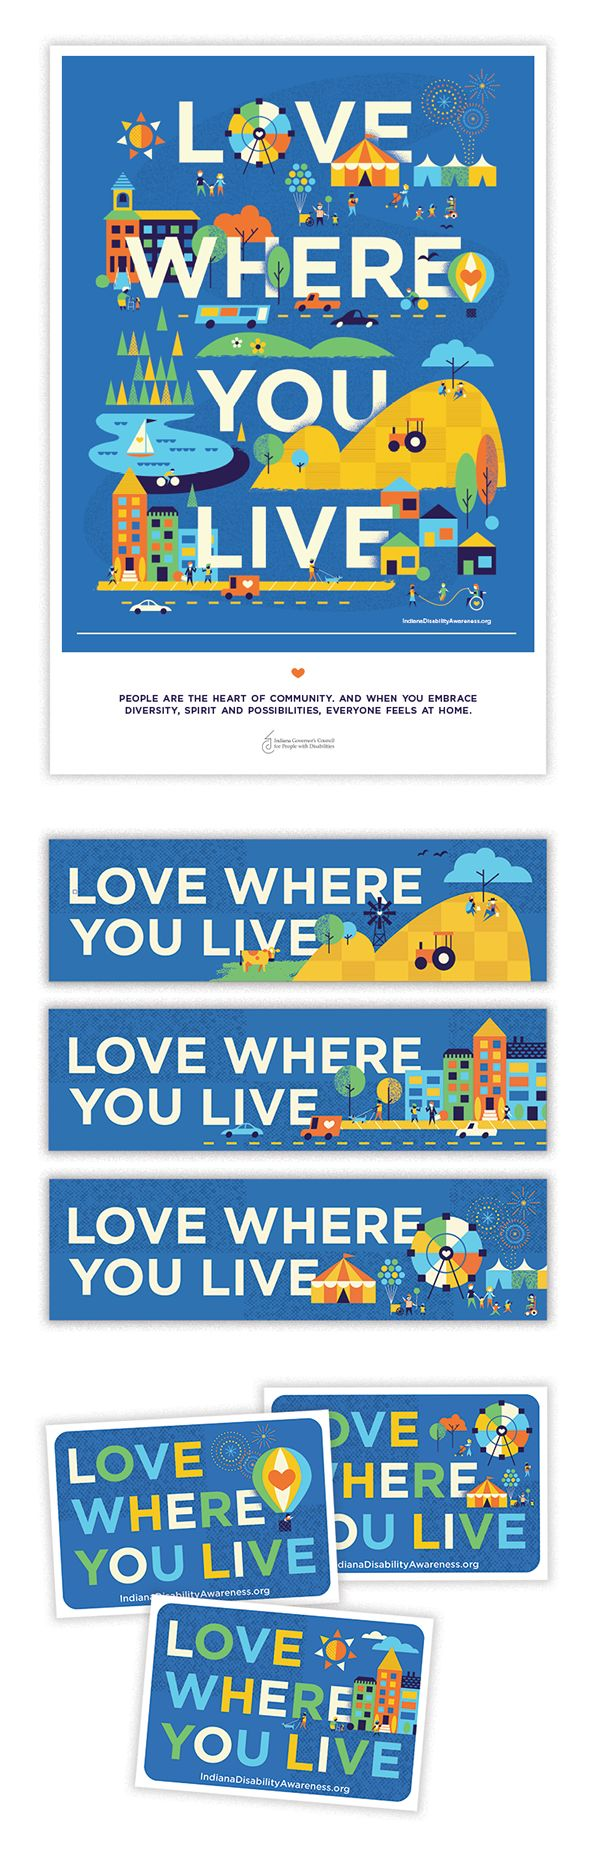 Love Where You Live on Behance, by the amazing Brad Woodard